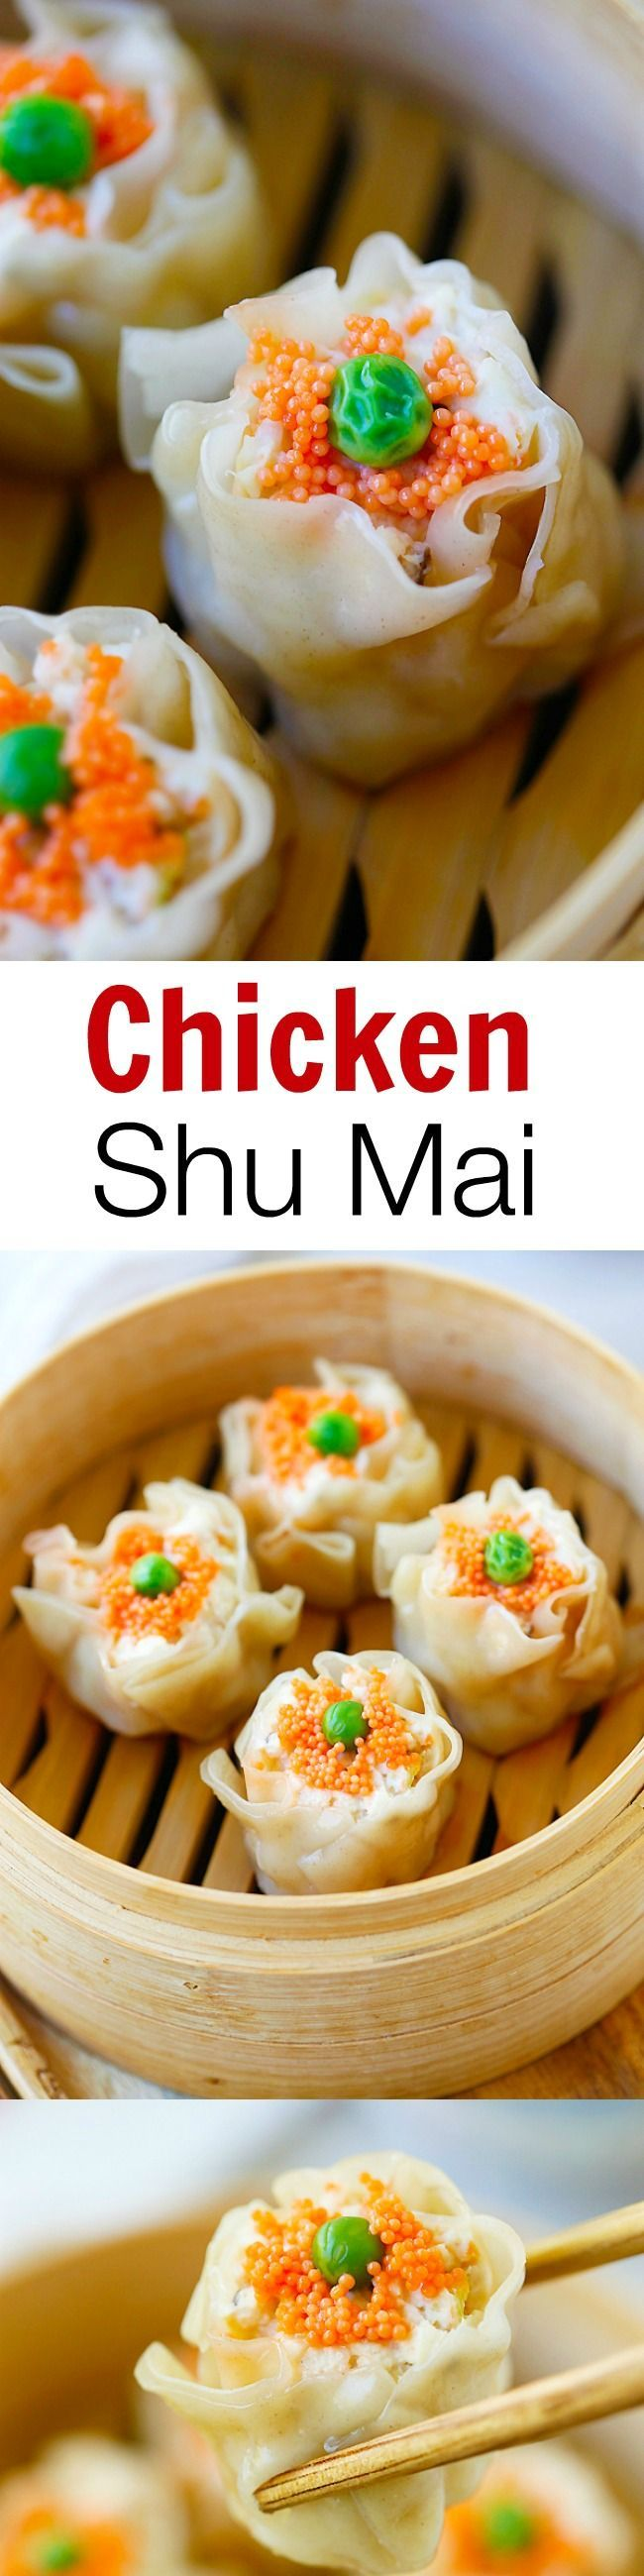 Chicken Shu Mai (Siu Mai) is a popular dim sum item. Learn how to make chicken shu mai with this quick and amazing recipe that is better than Chinatown!! | http://rasamalaysia.com